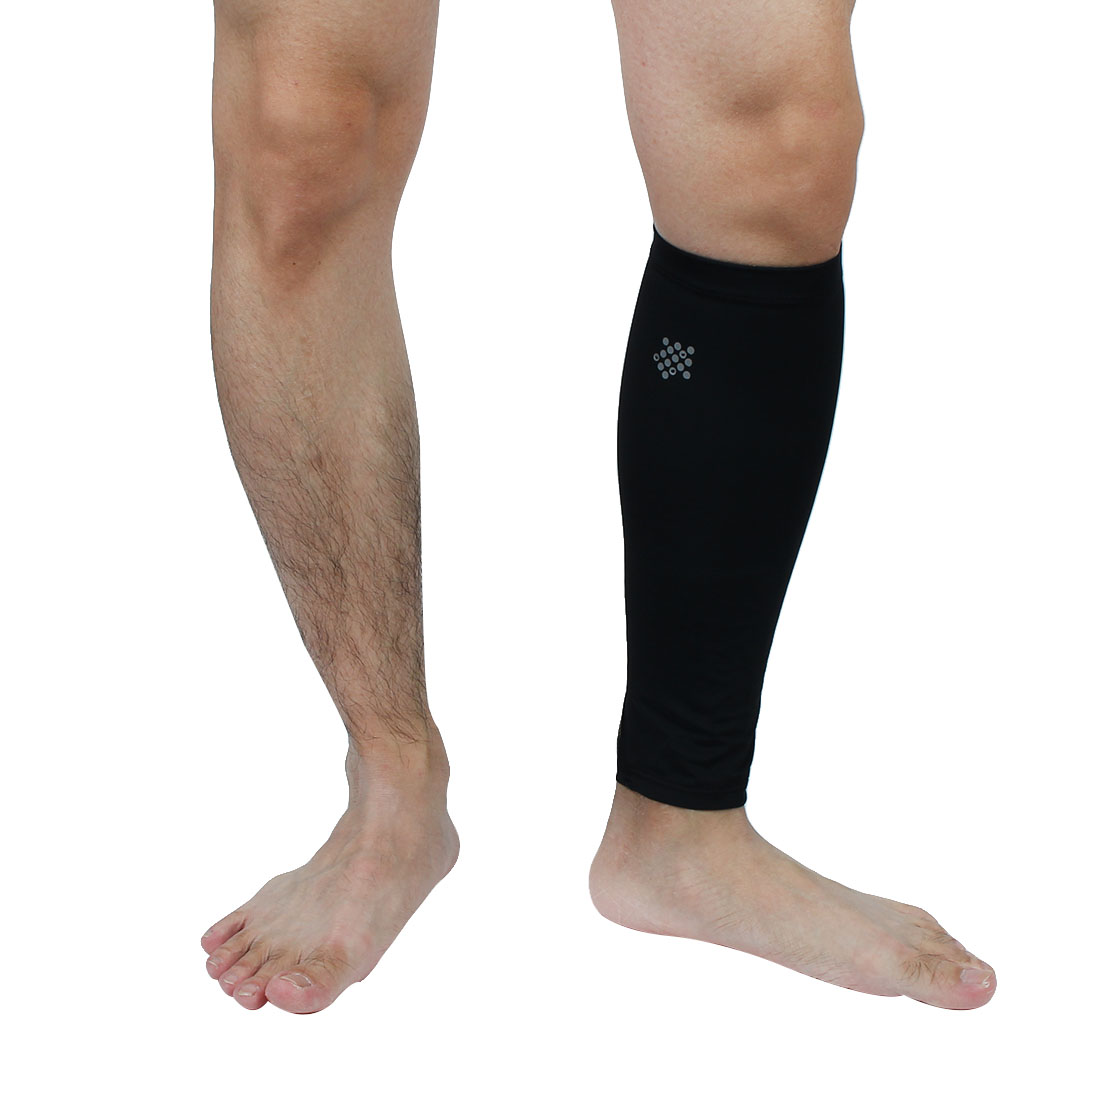 Mountainpeak Authorized Unisex Spandex Football Basketball Cycling Long Support Protector Sports Leg Sleeve Black M Pair